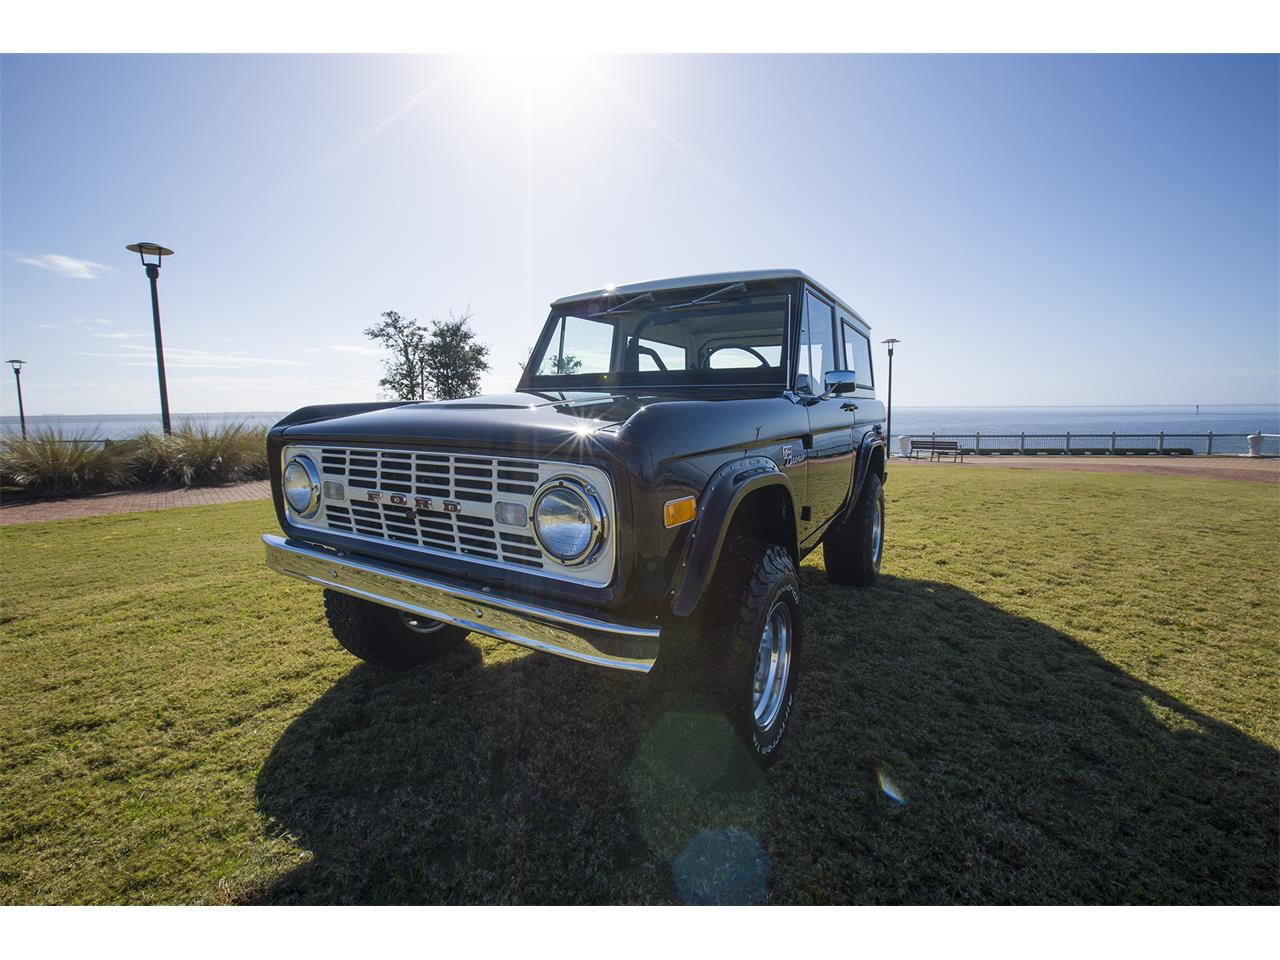 Large Picture of '76 Ford Bronco located in Pensacola Florida - $159,999.00 - OEPC